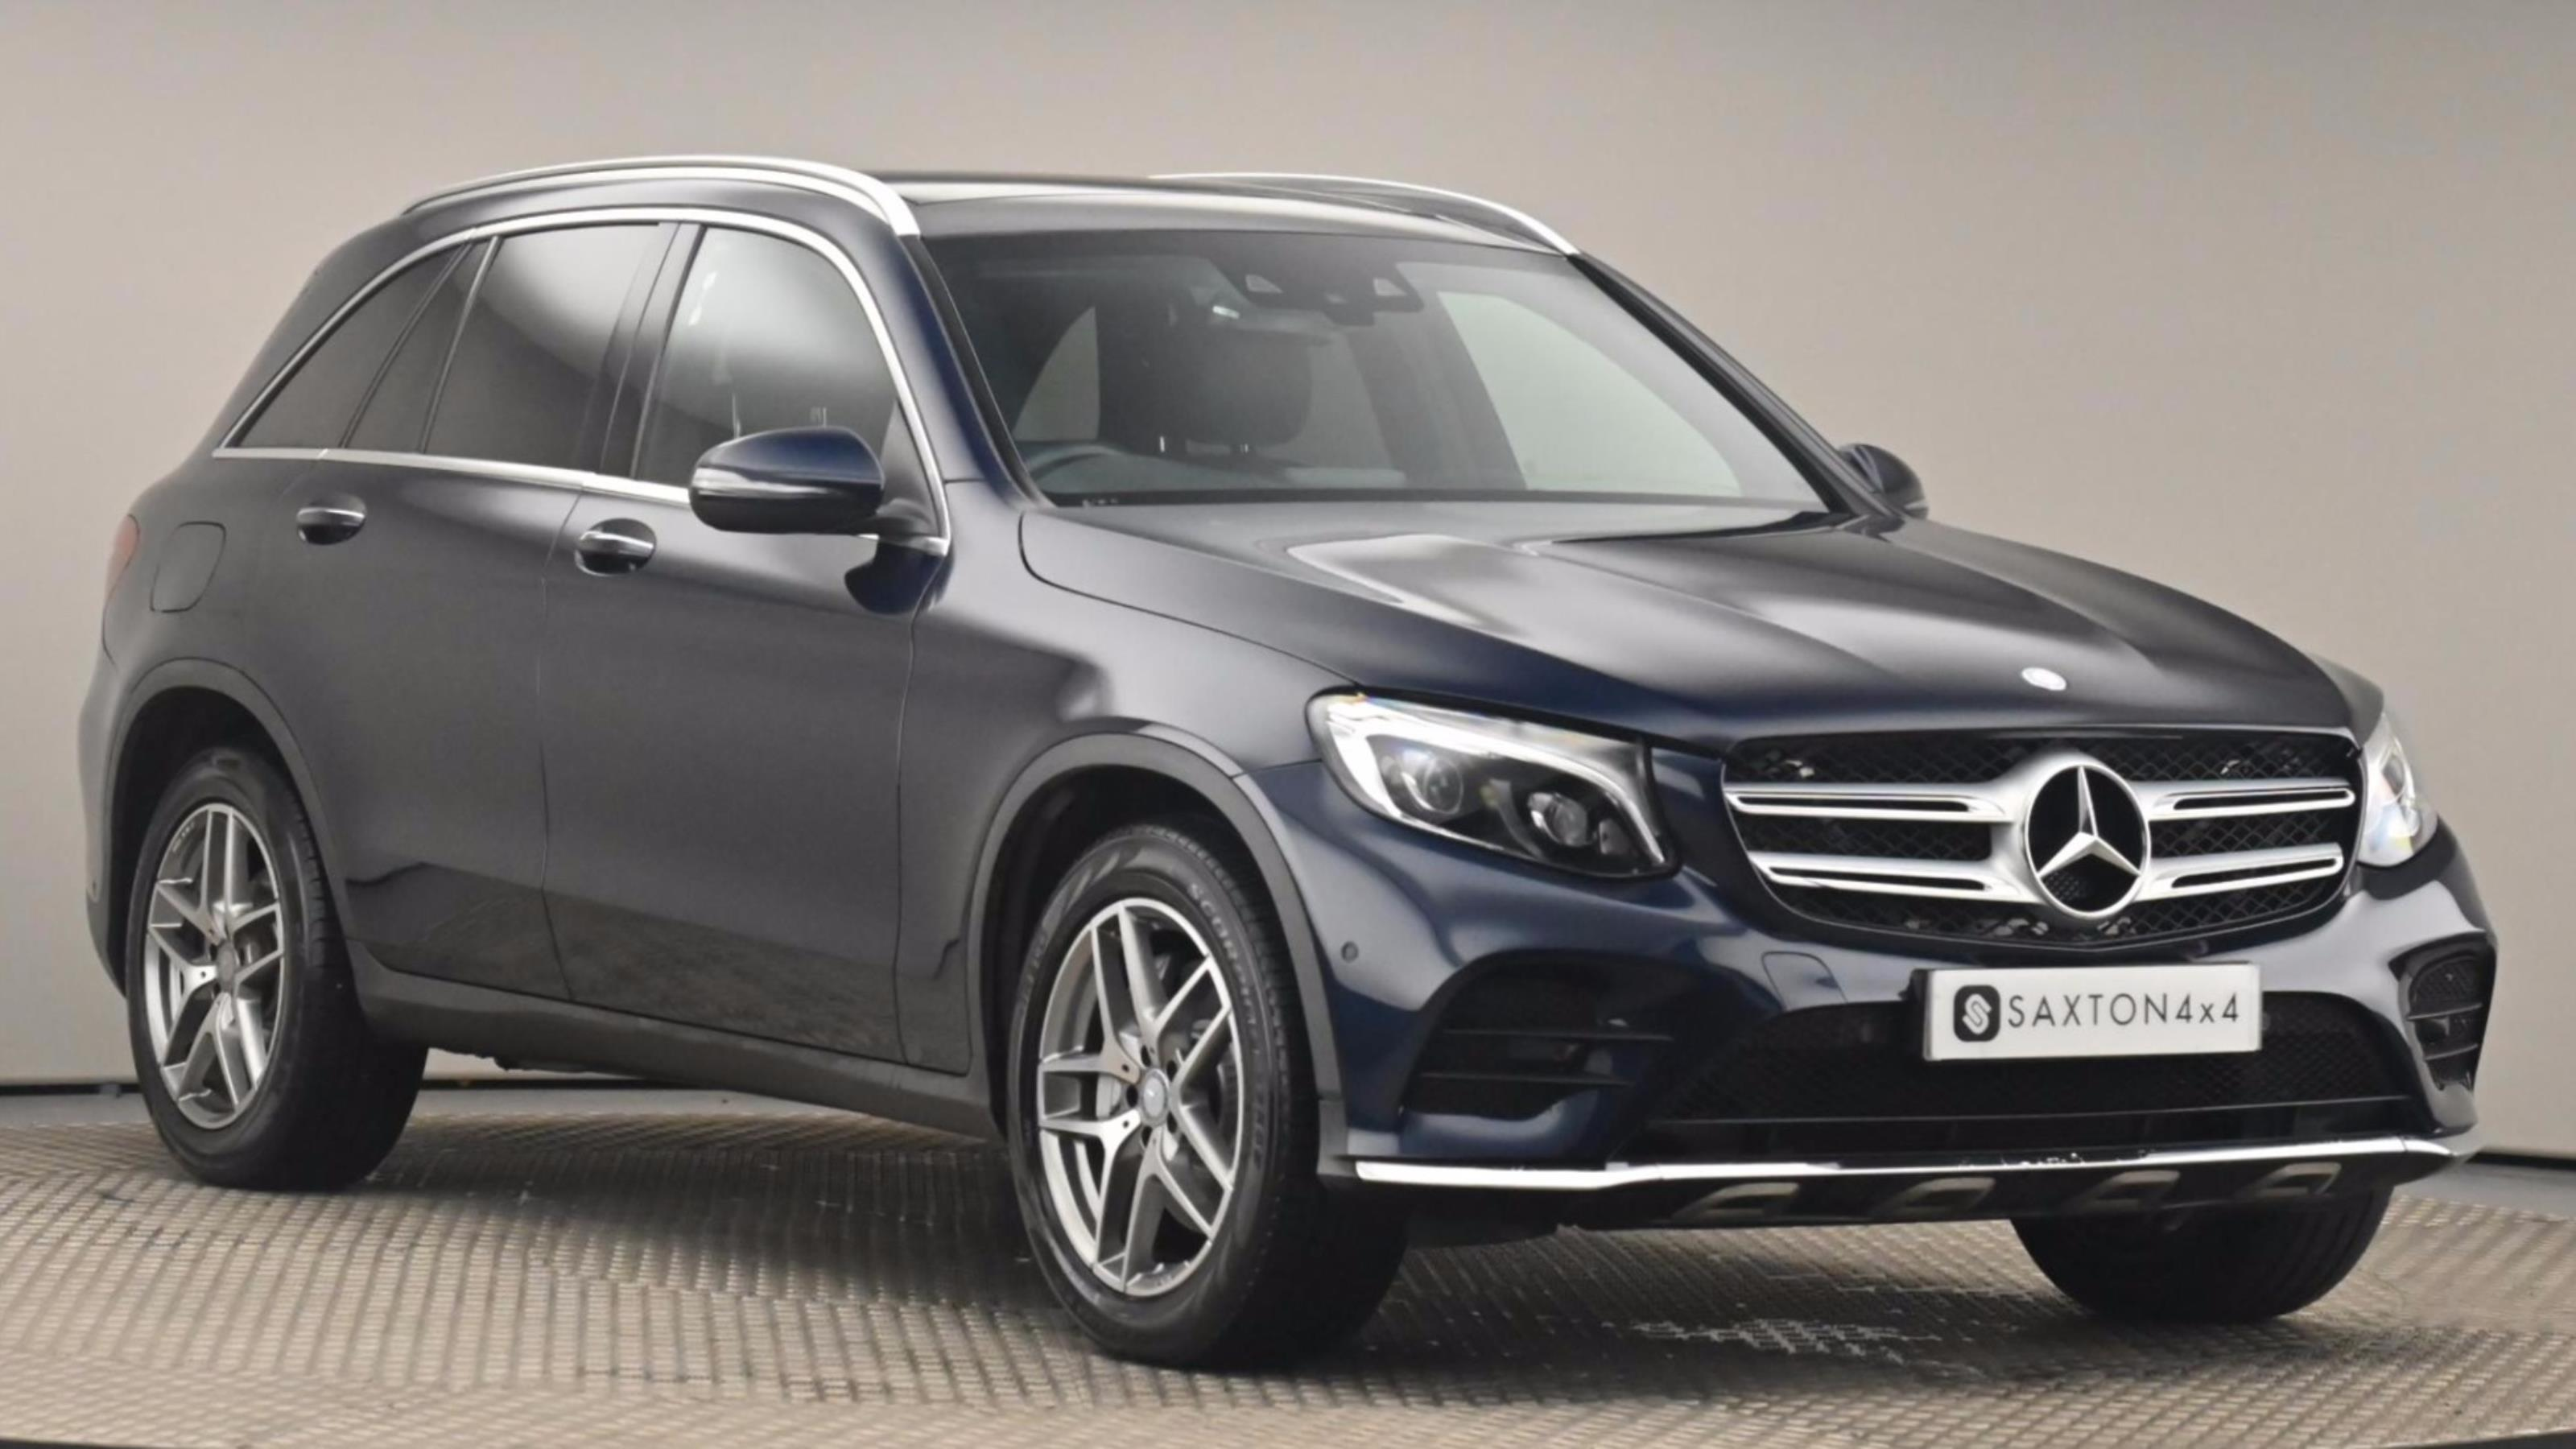 Used 15 Mercedes-Benz GLC GLC 250d 4Matic AMG Line Premium 5dr 9G-Tronic Blue at Saxton4x4